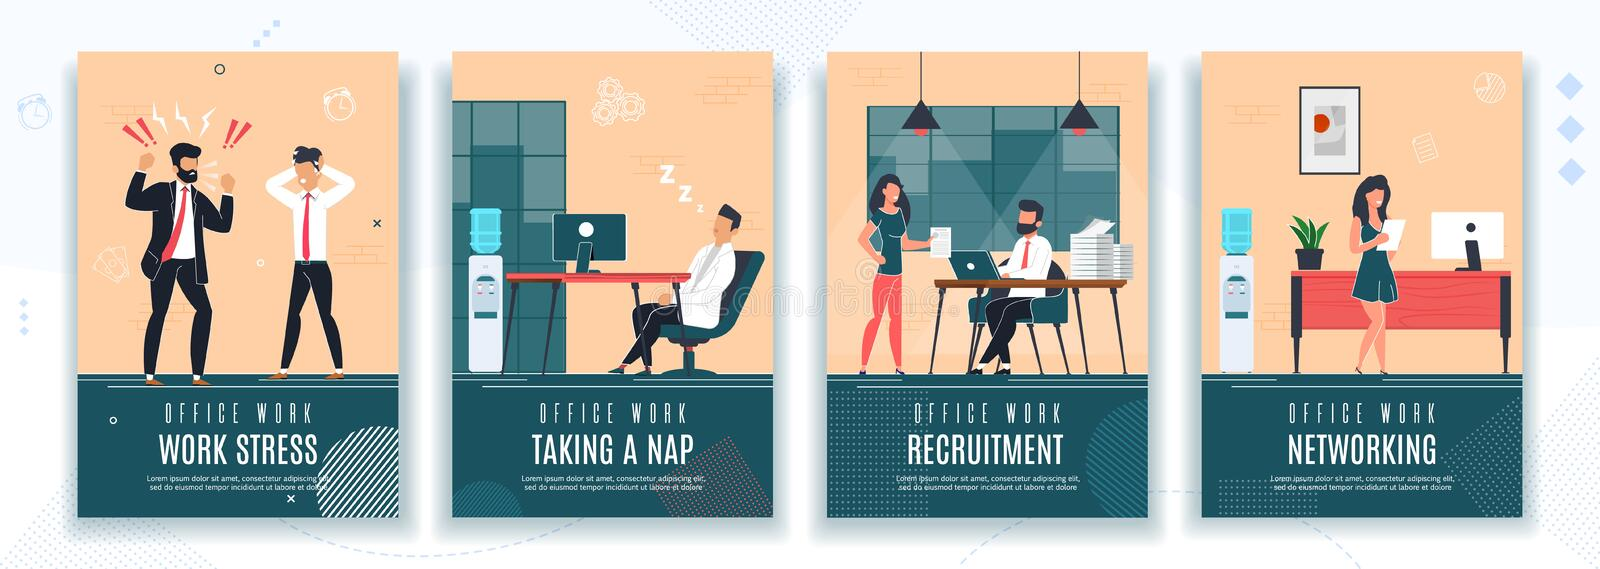 Work Stress, HR, Rest at Work Office Poster Set. Work Stress, Taking Nap, Recruitment, Networking Poster Set. Break Time, HR, Failure Deadline. Woman on Job stock illustration